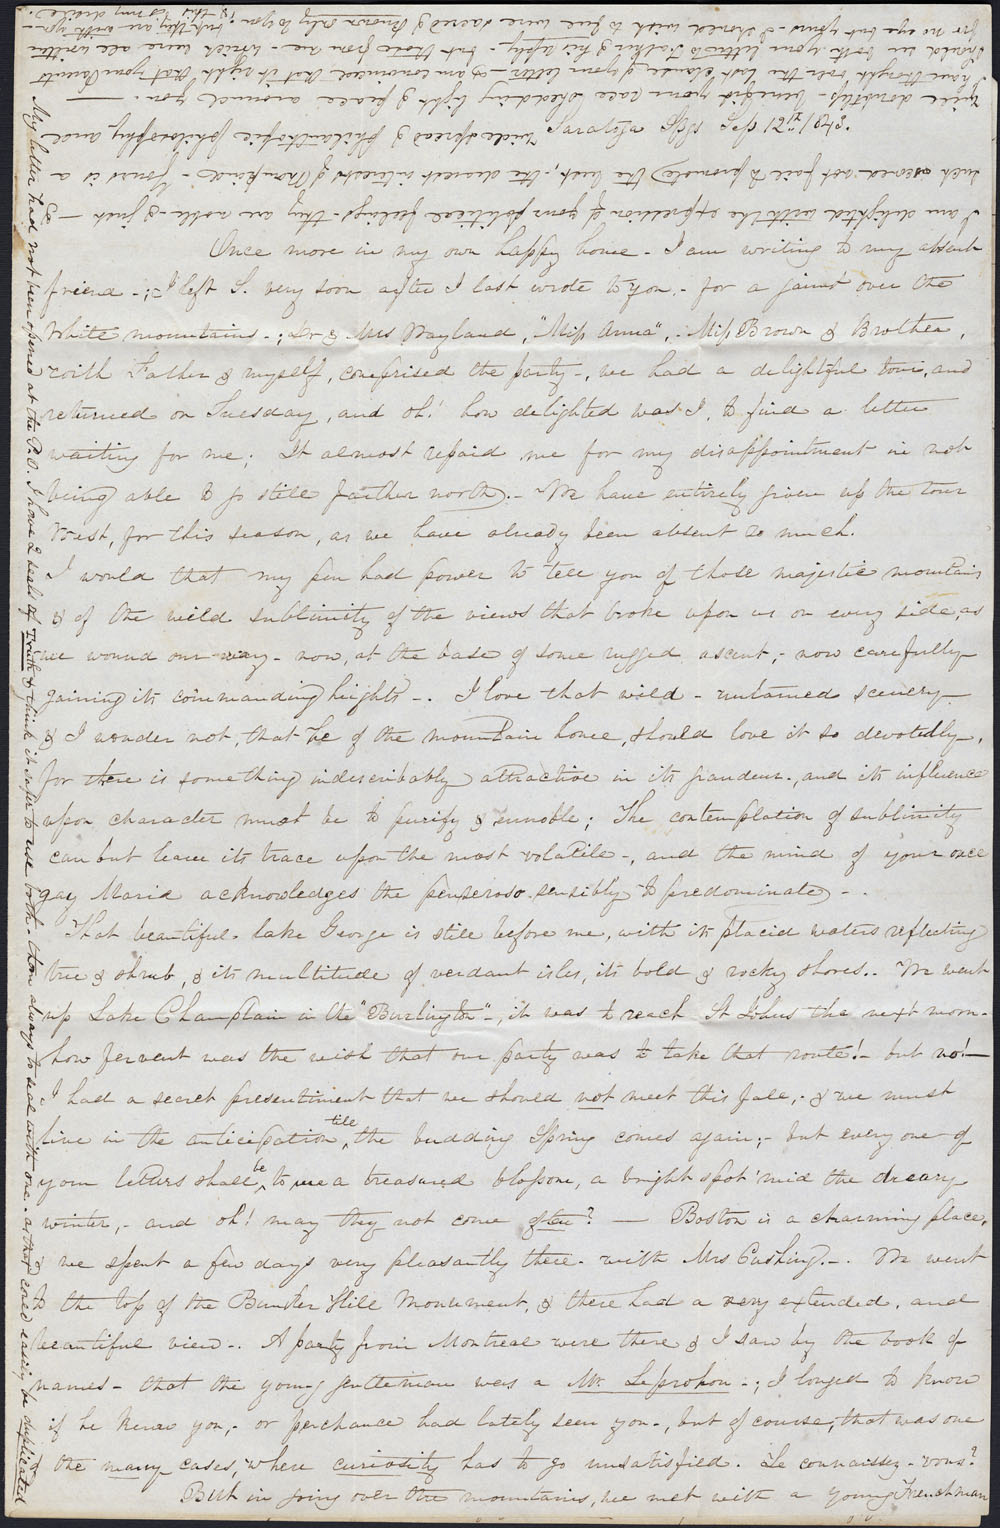 [Correspondance de Mary Westcott] 1843 . (item 12)